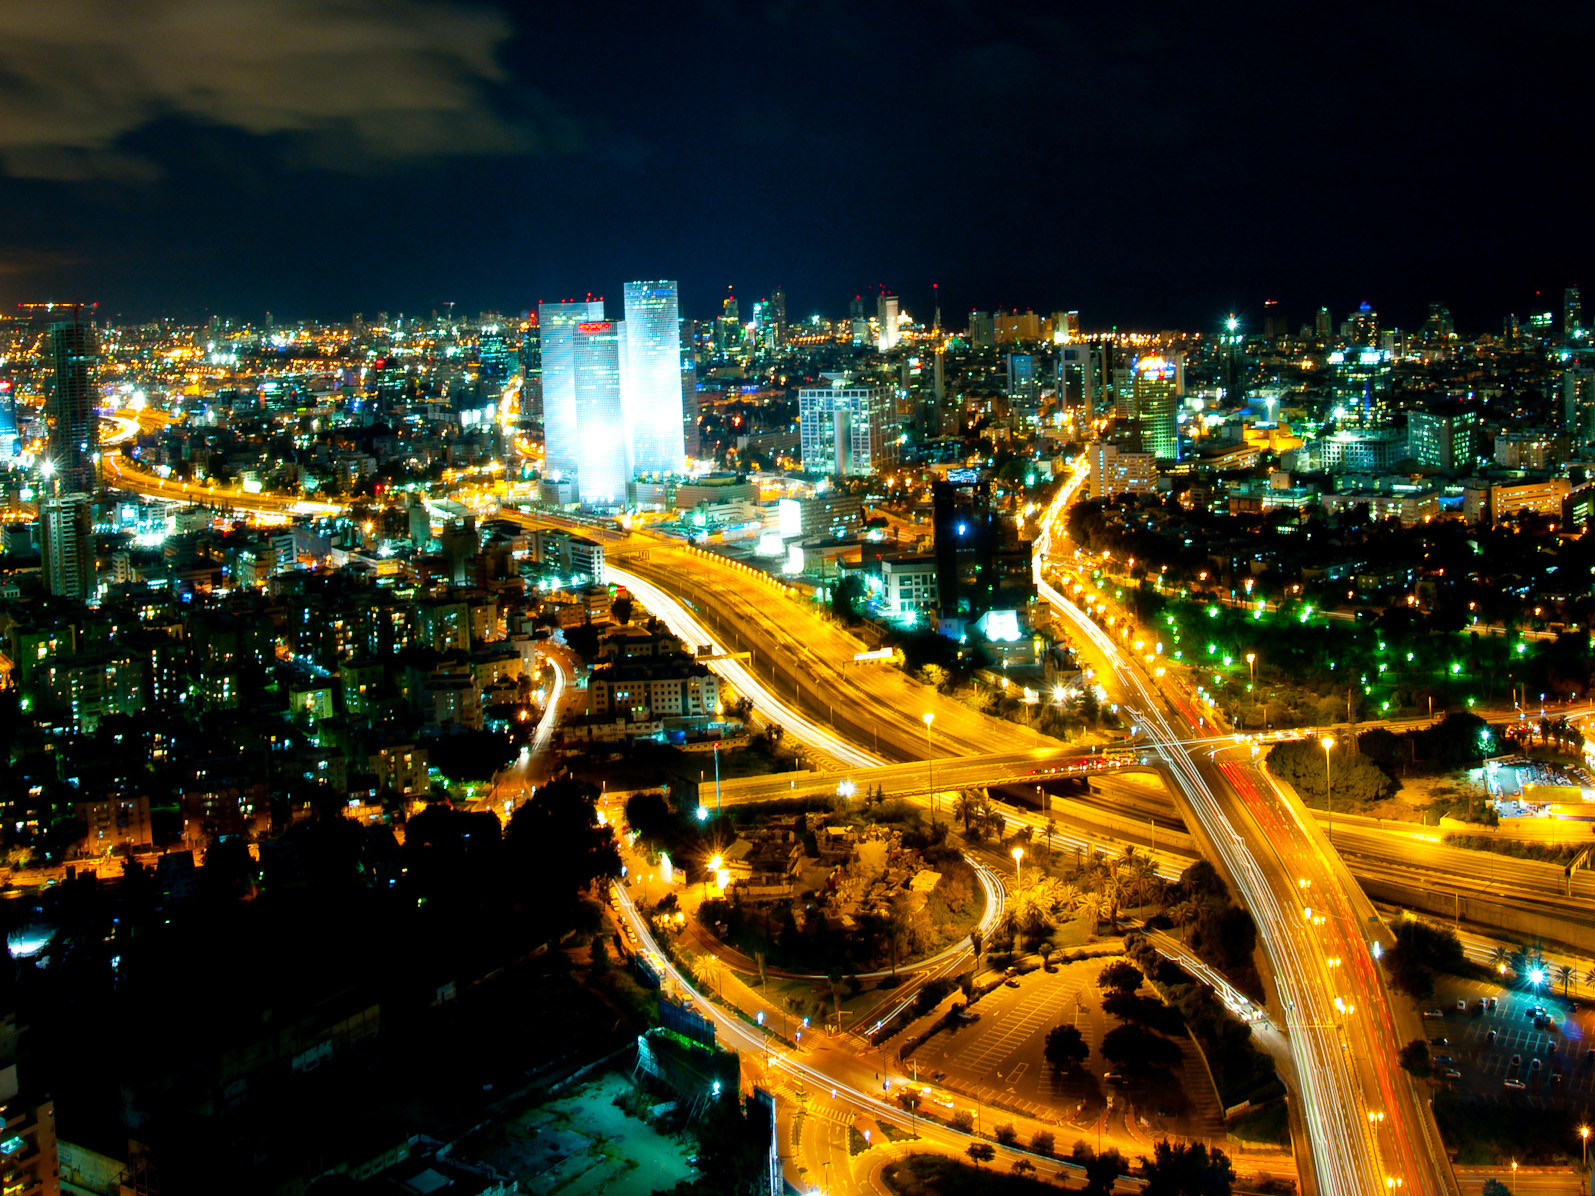 Tel_Aviv_Skyline_(night)_-_2